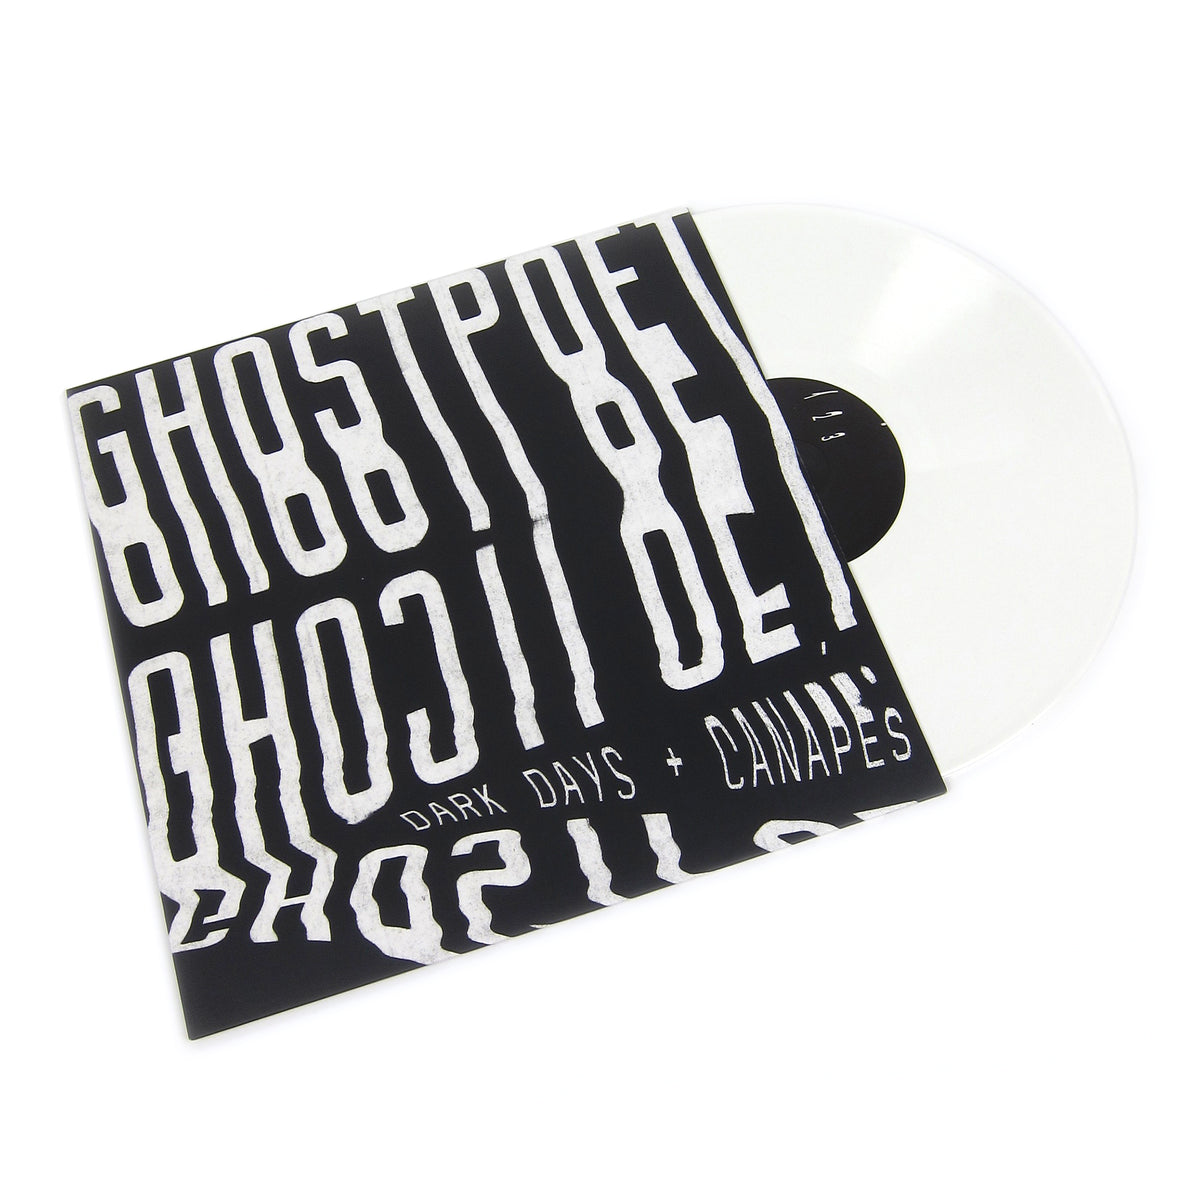 Ghostpoet: Dark Days + Canapes (180g, Colored Vinyl) Vinyl LP